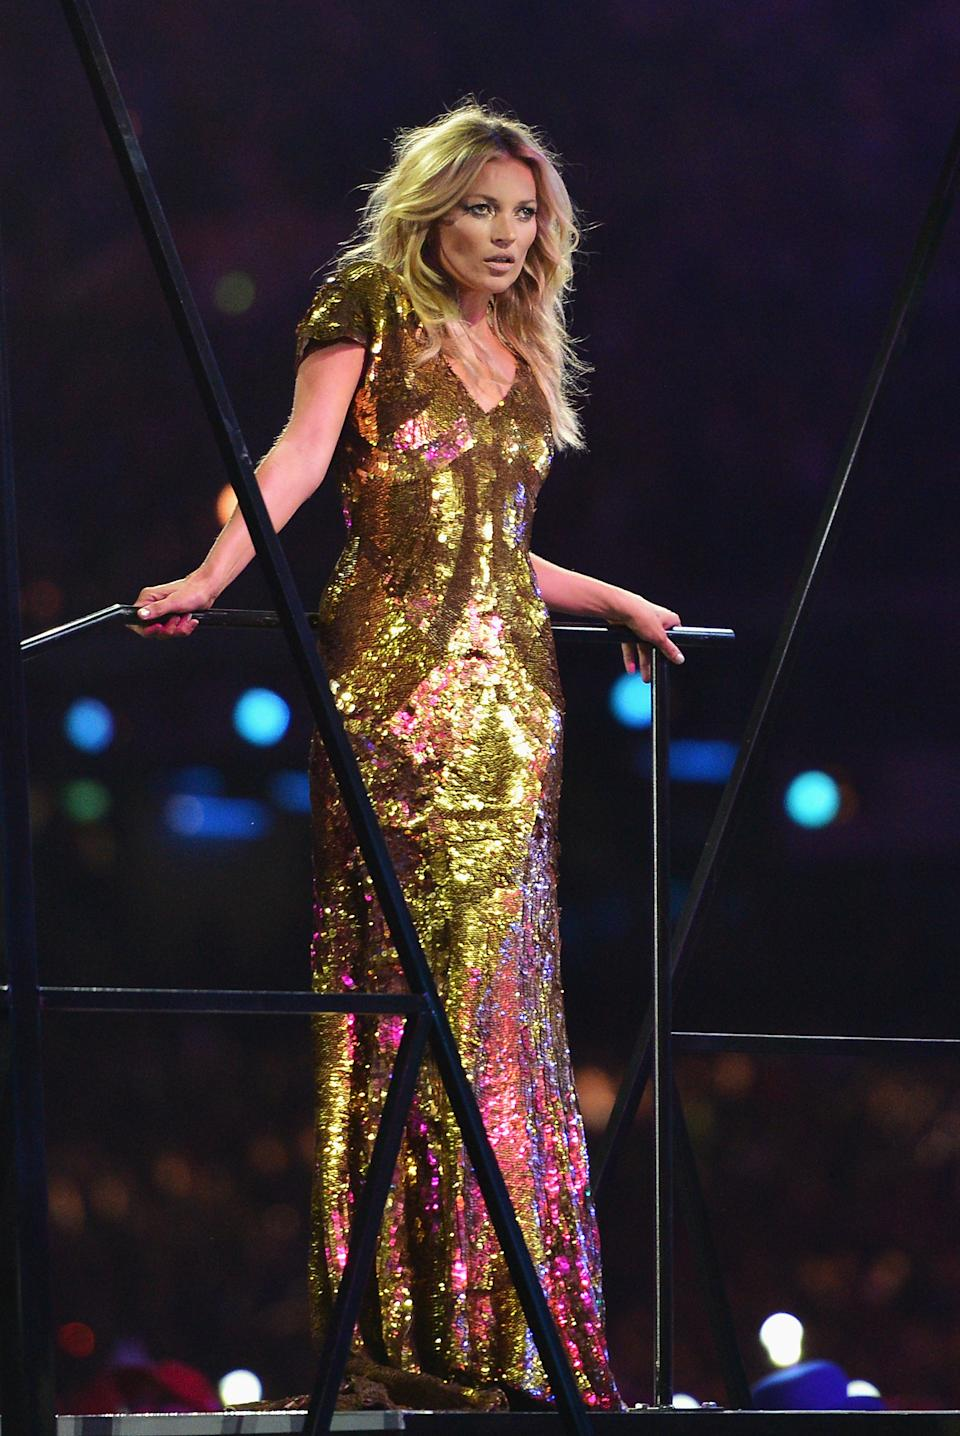 Model Kate Moss performs during the Closing Ceremony on Day 16 of the London 2012 Olympic Games at Olympic Stadium on August 12, 2012 in London, England. (Photo by Jeff J Mitchell/Getty Images)